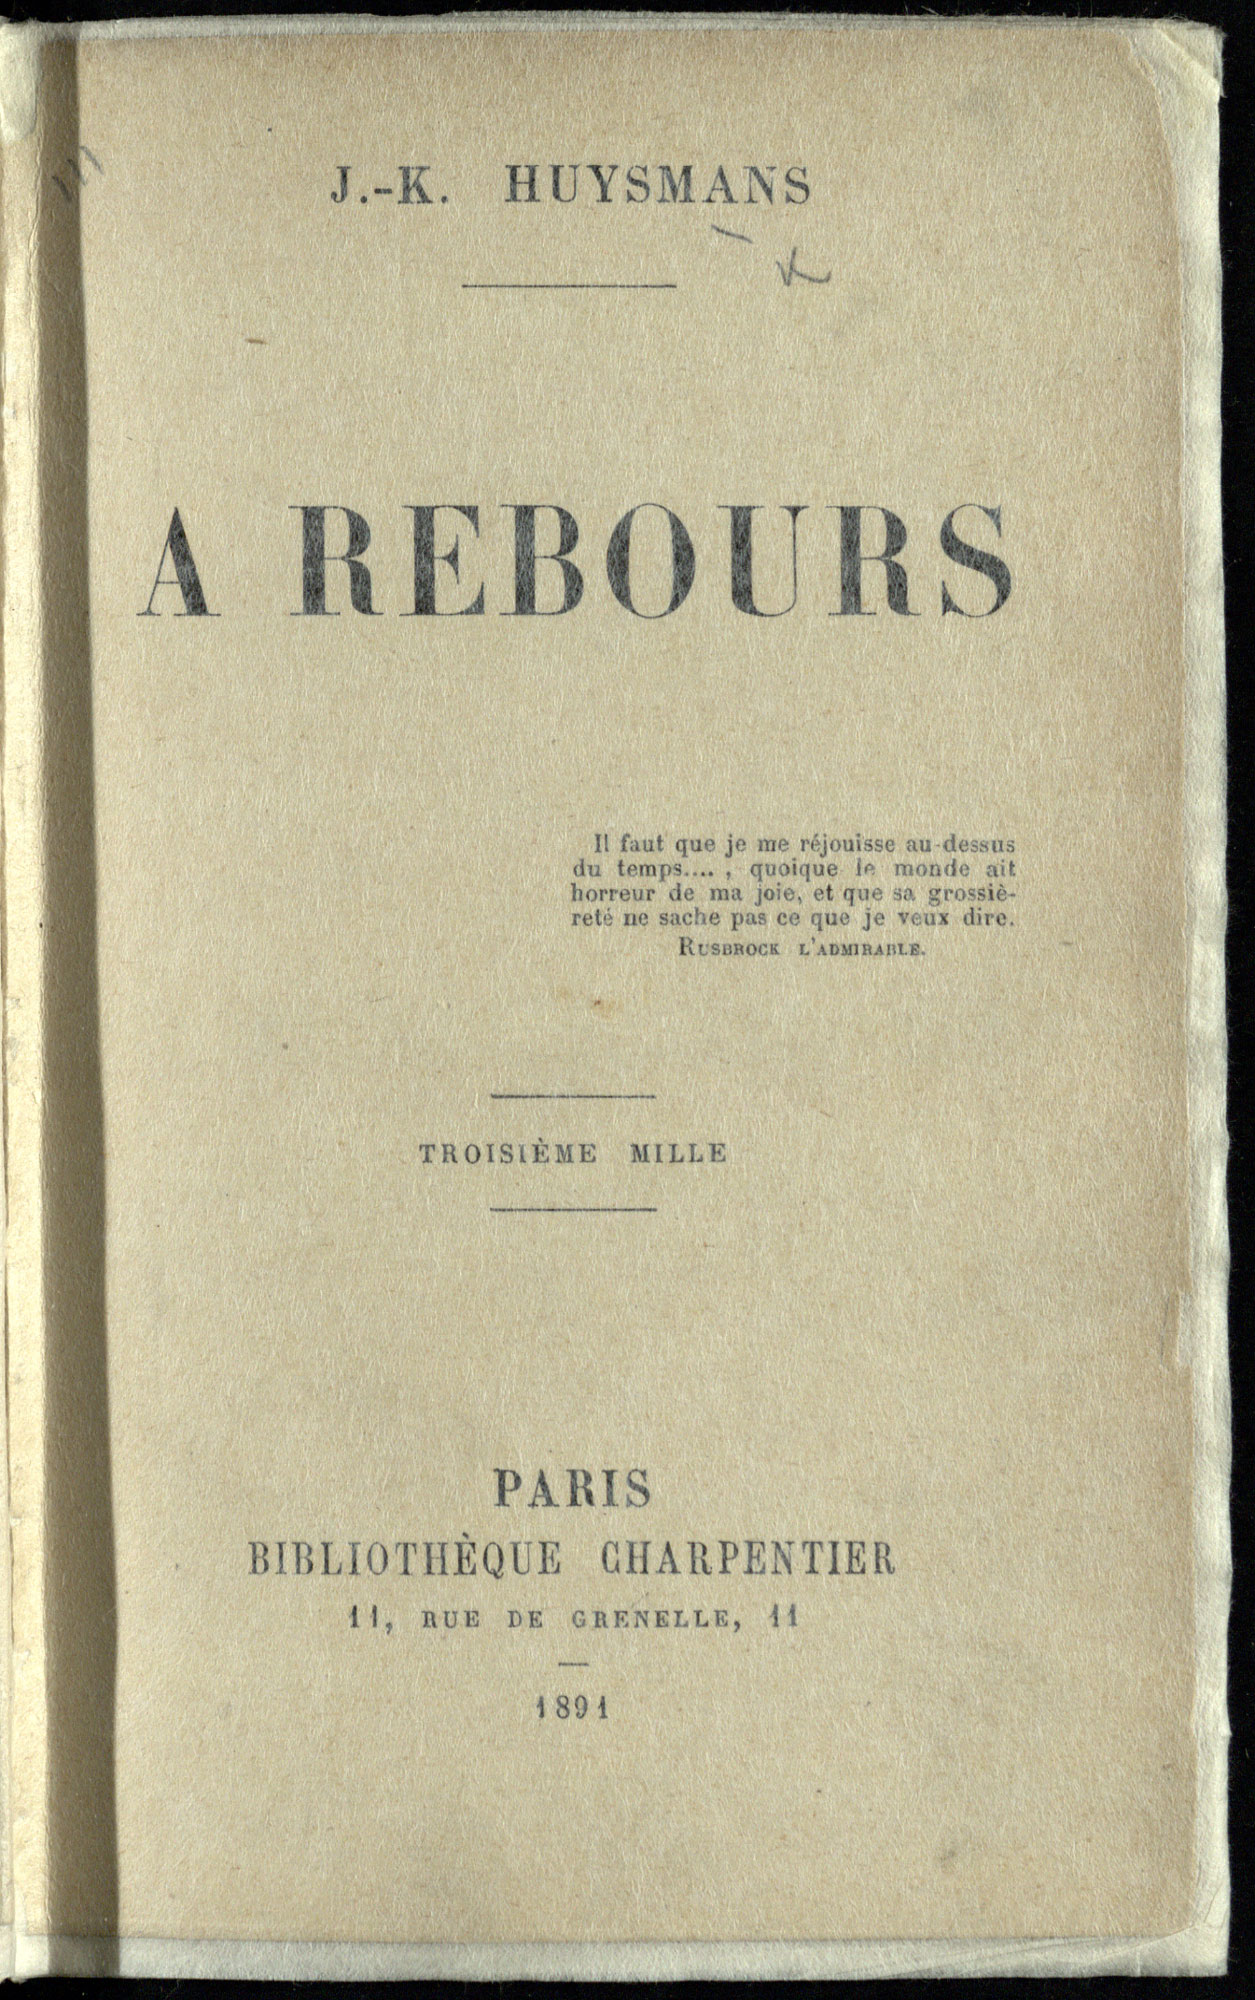 Decadent novel À rebours, or, Against Nature